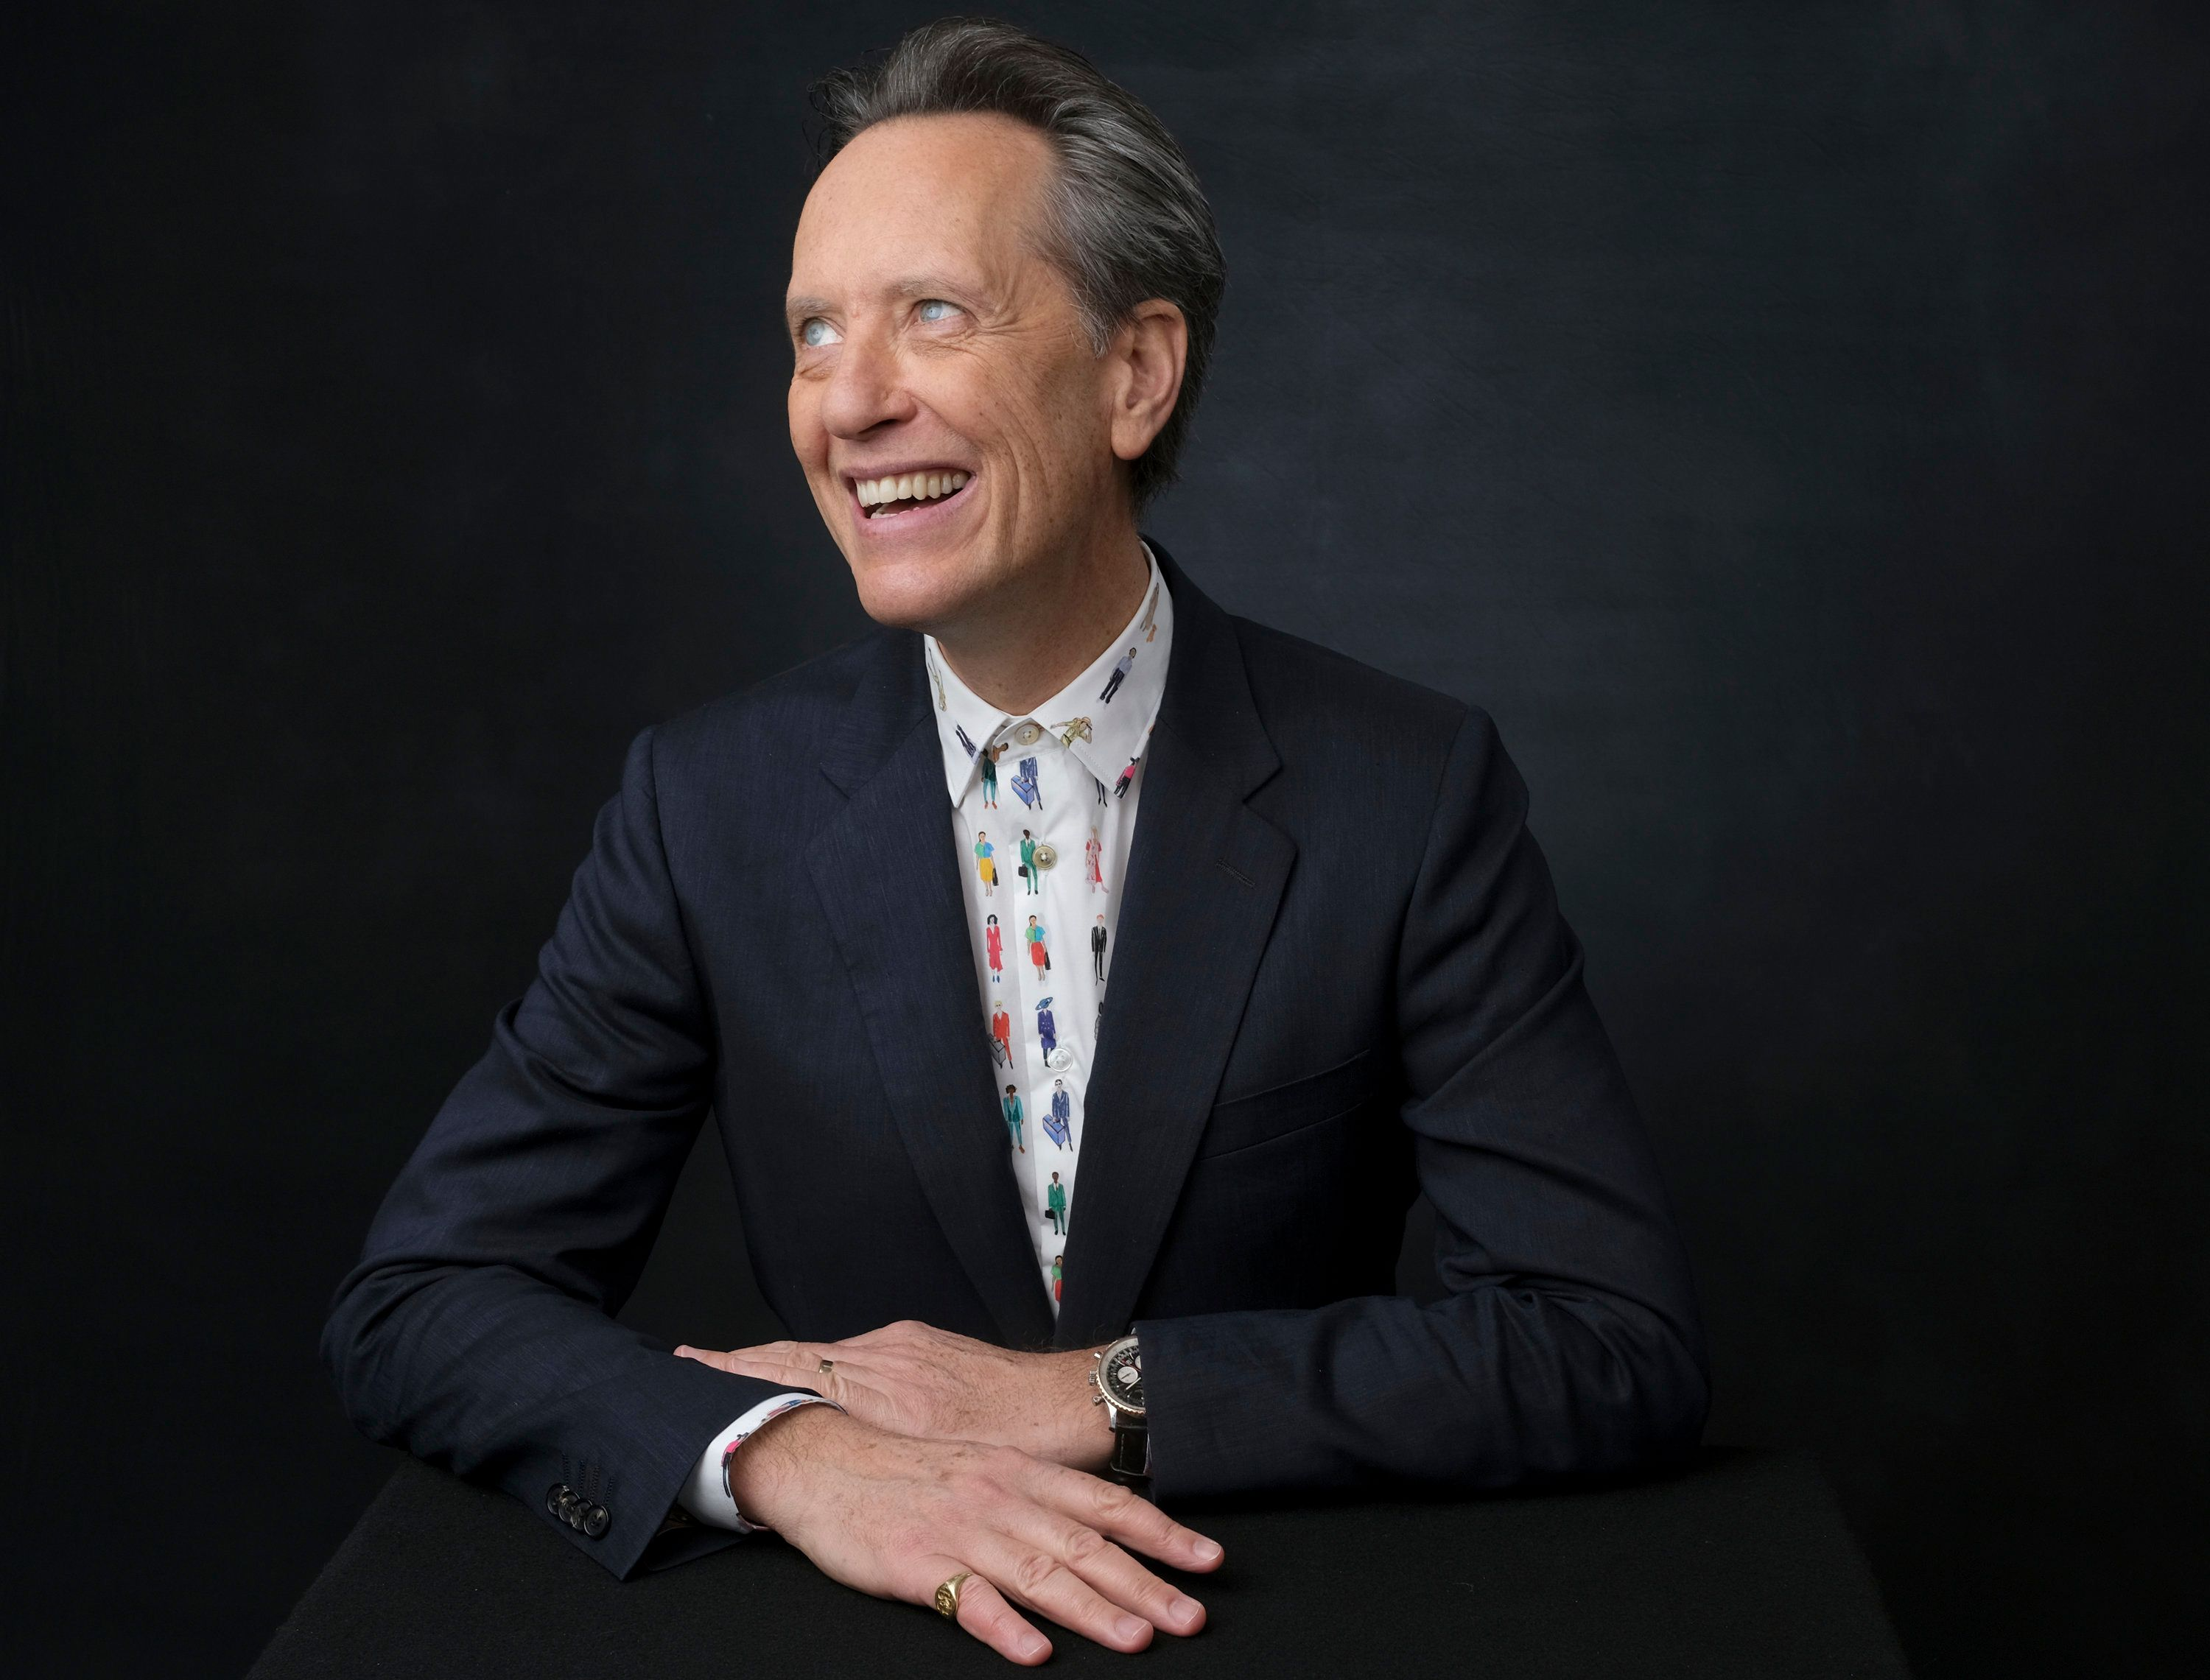 Richard E. Grant poses for a portrait at the 91st Academy Awards Nominees Luncheon at The Beverly Hilton Hotel on Monday, Feb. 4, 2019, in Beverly Hills, Calif. (Photo by Chris Pizzello/Invision/AP)